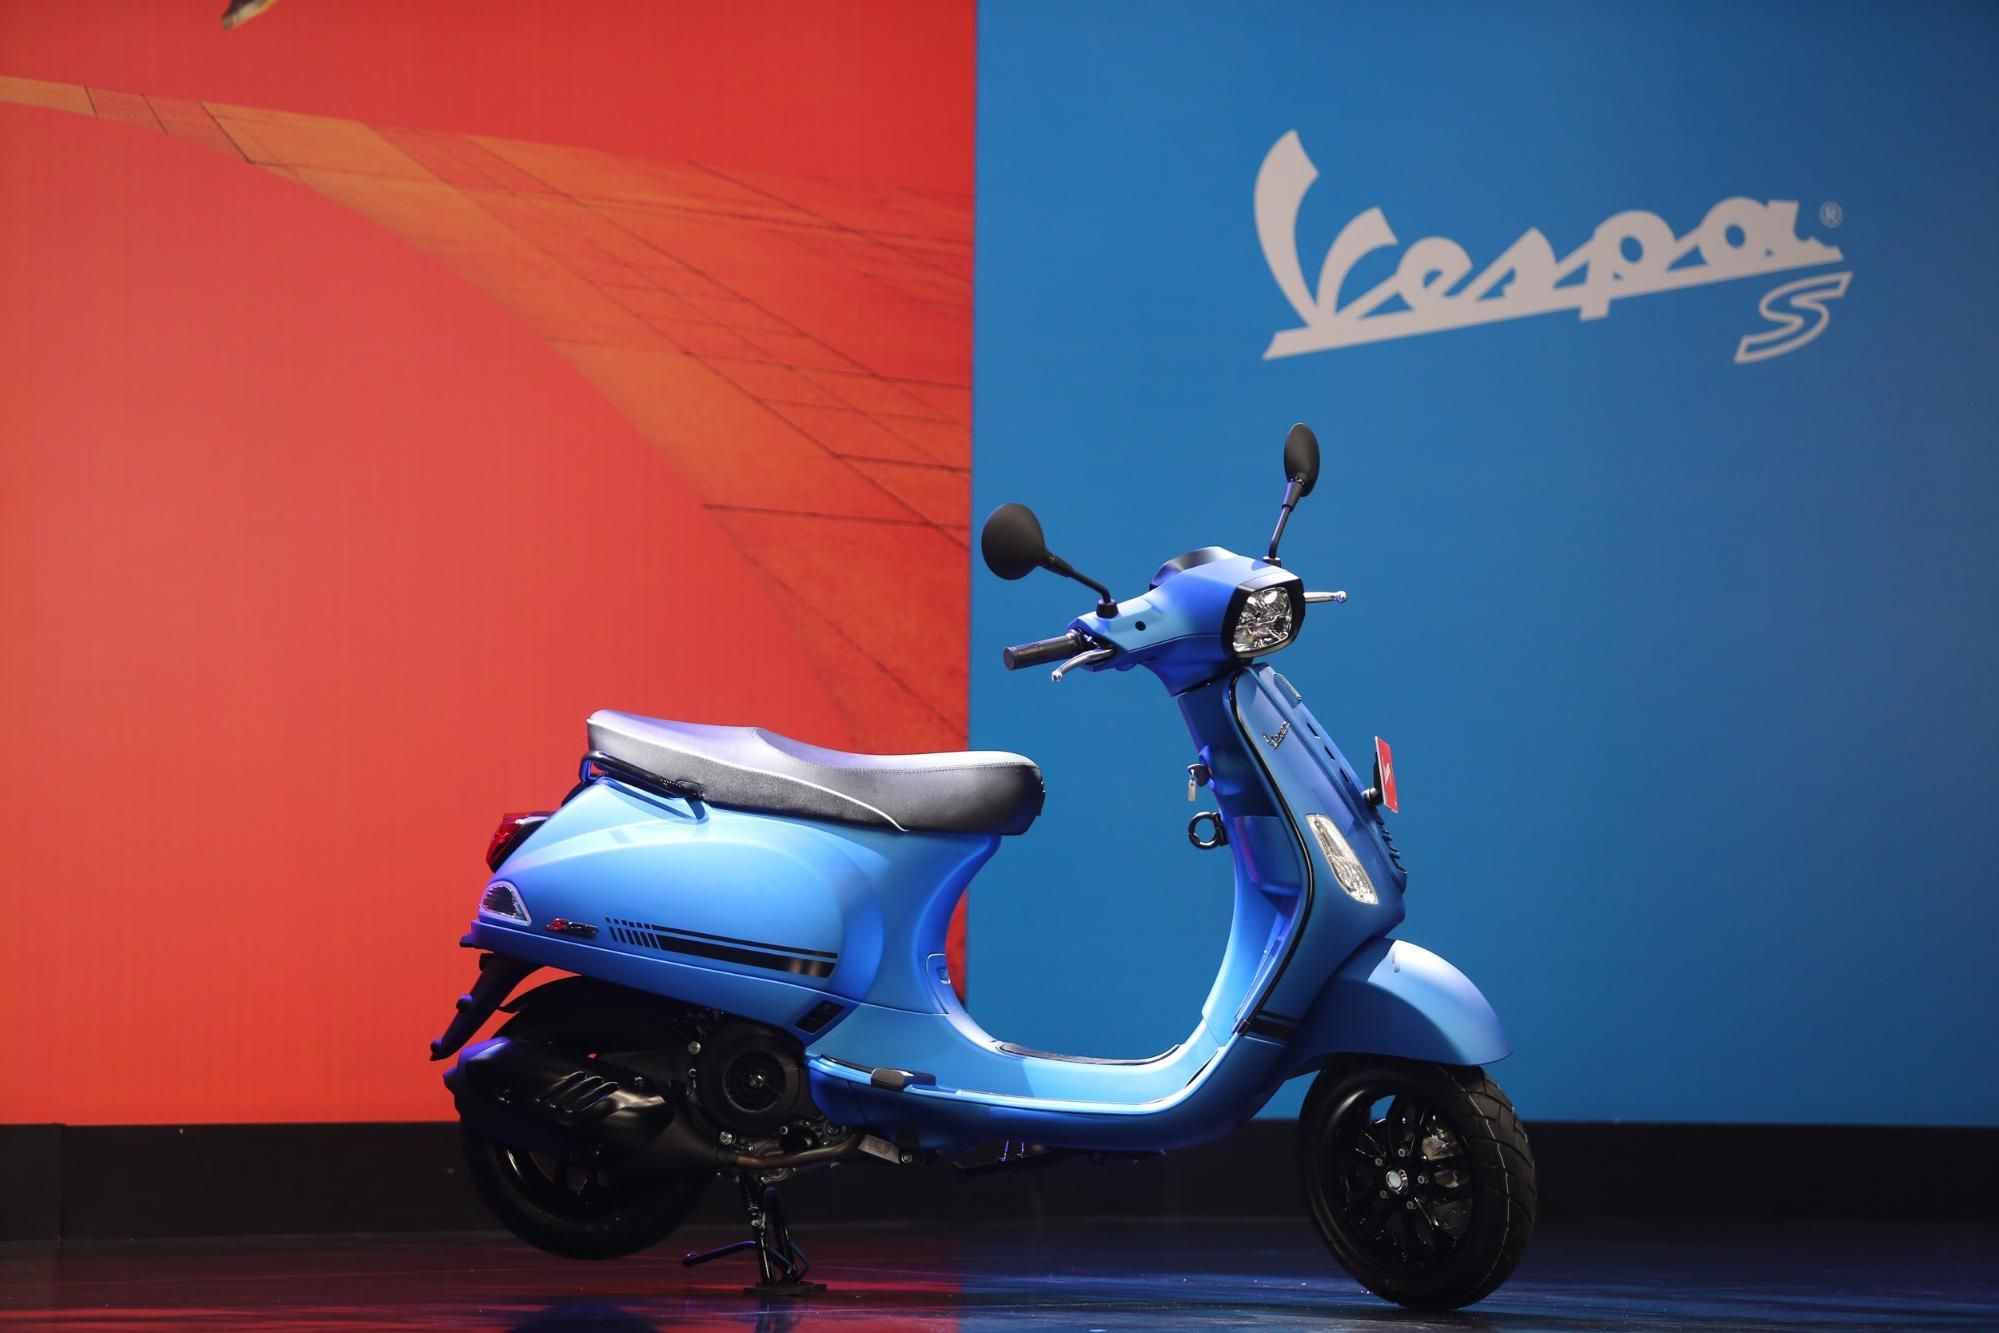 Vespa s 125 iget on blue and red background